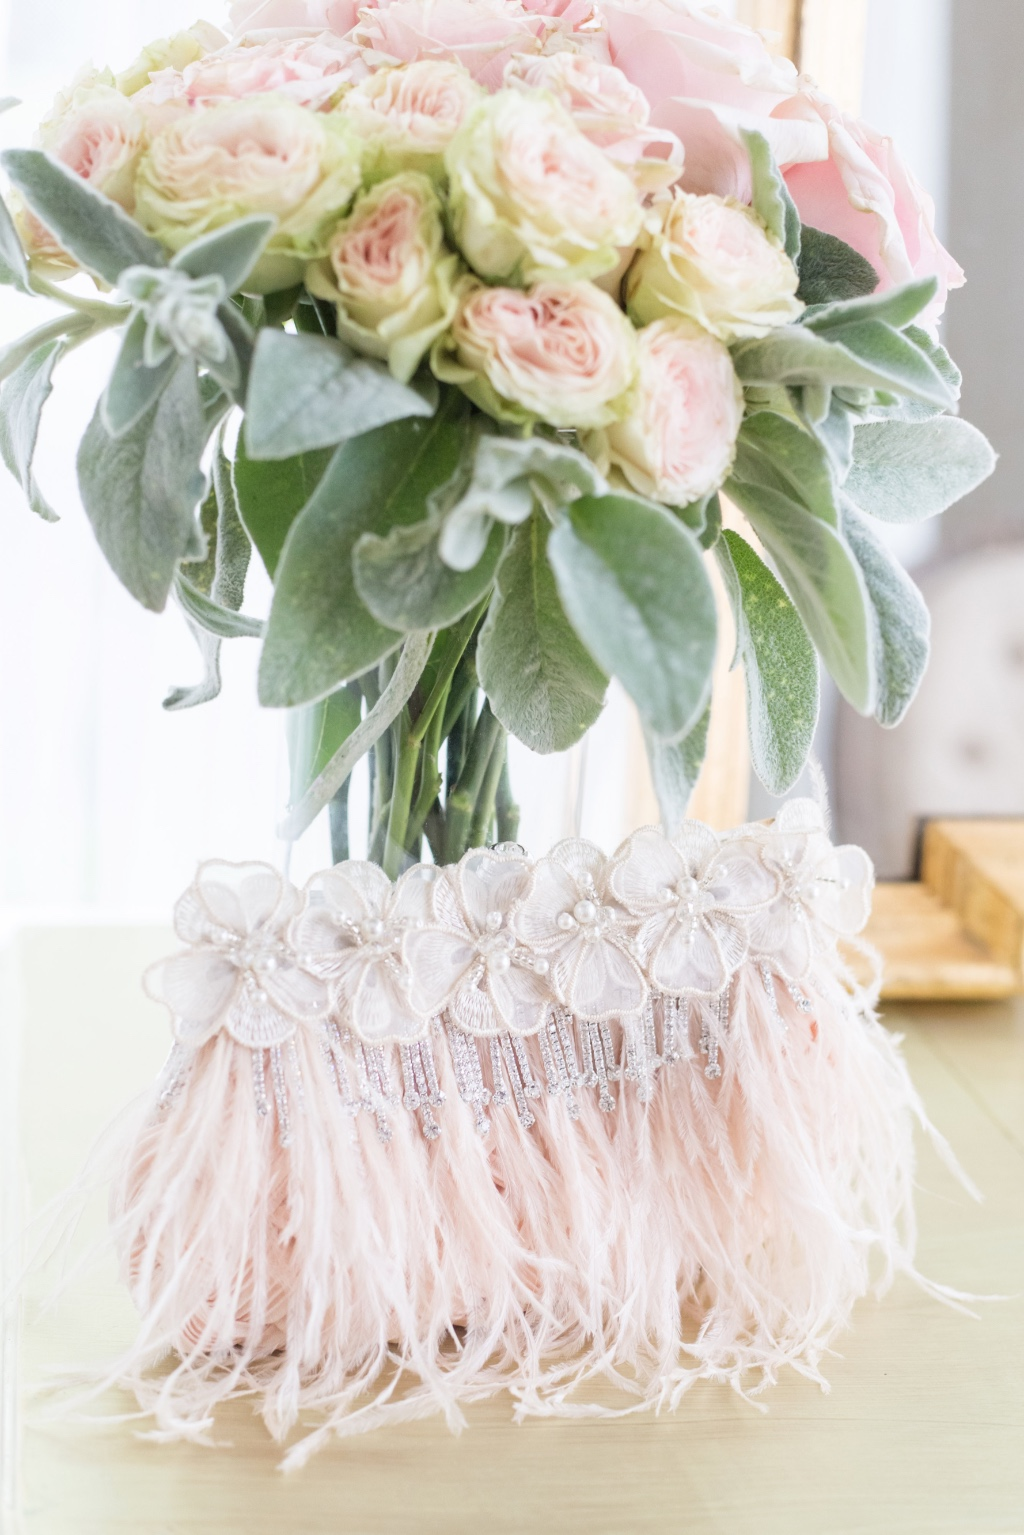 Pretty Blush and rhinestone details